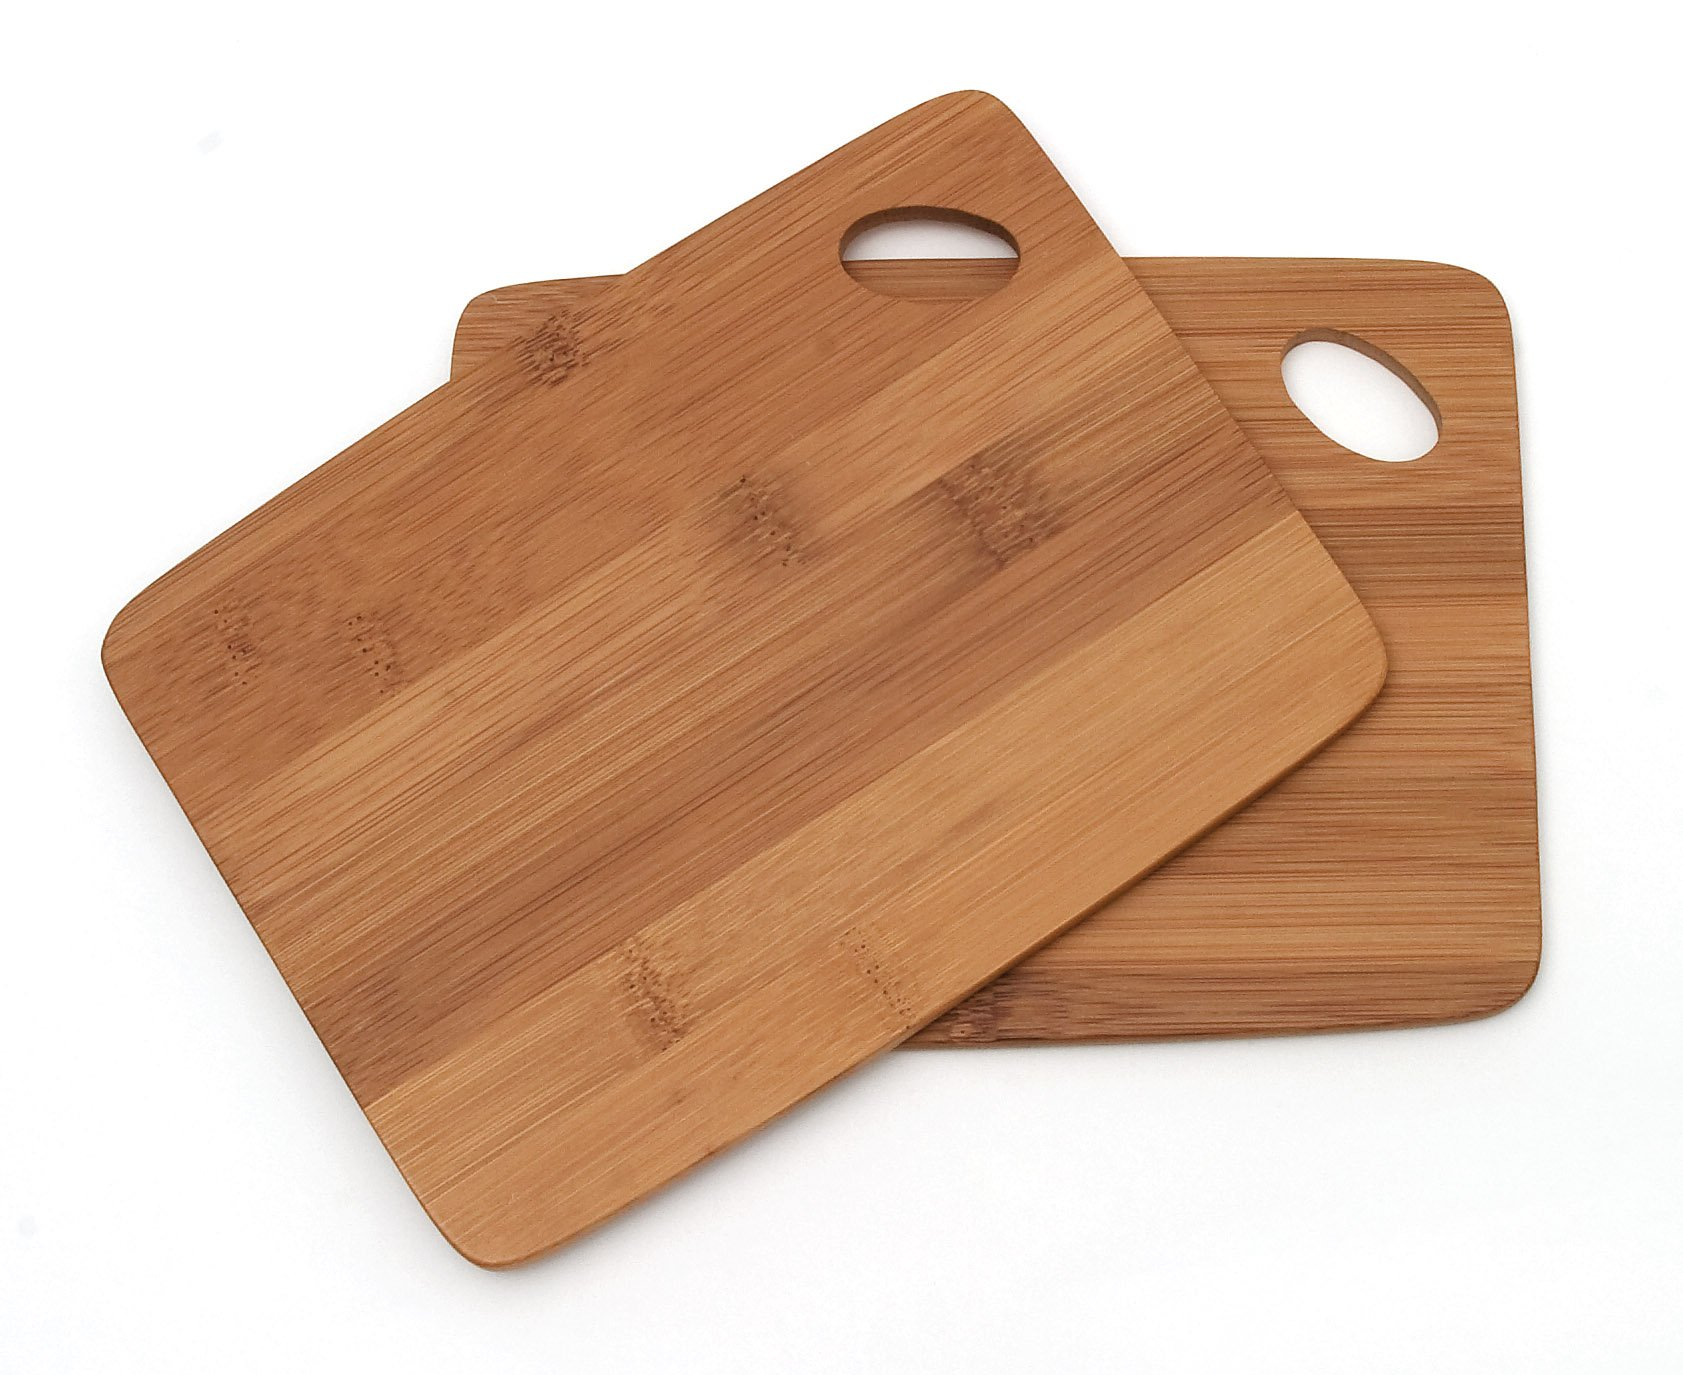 Bamboo Wood Thin Kitchen Cutting Boards With Oval Hole In